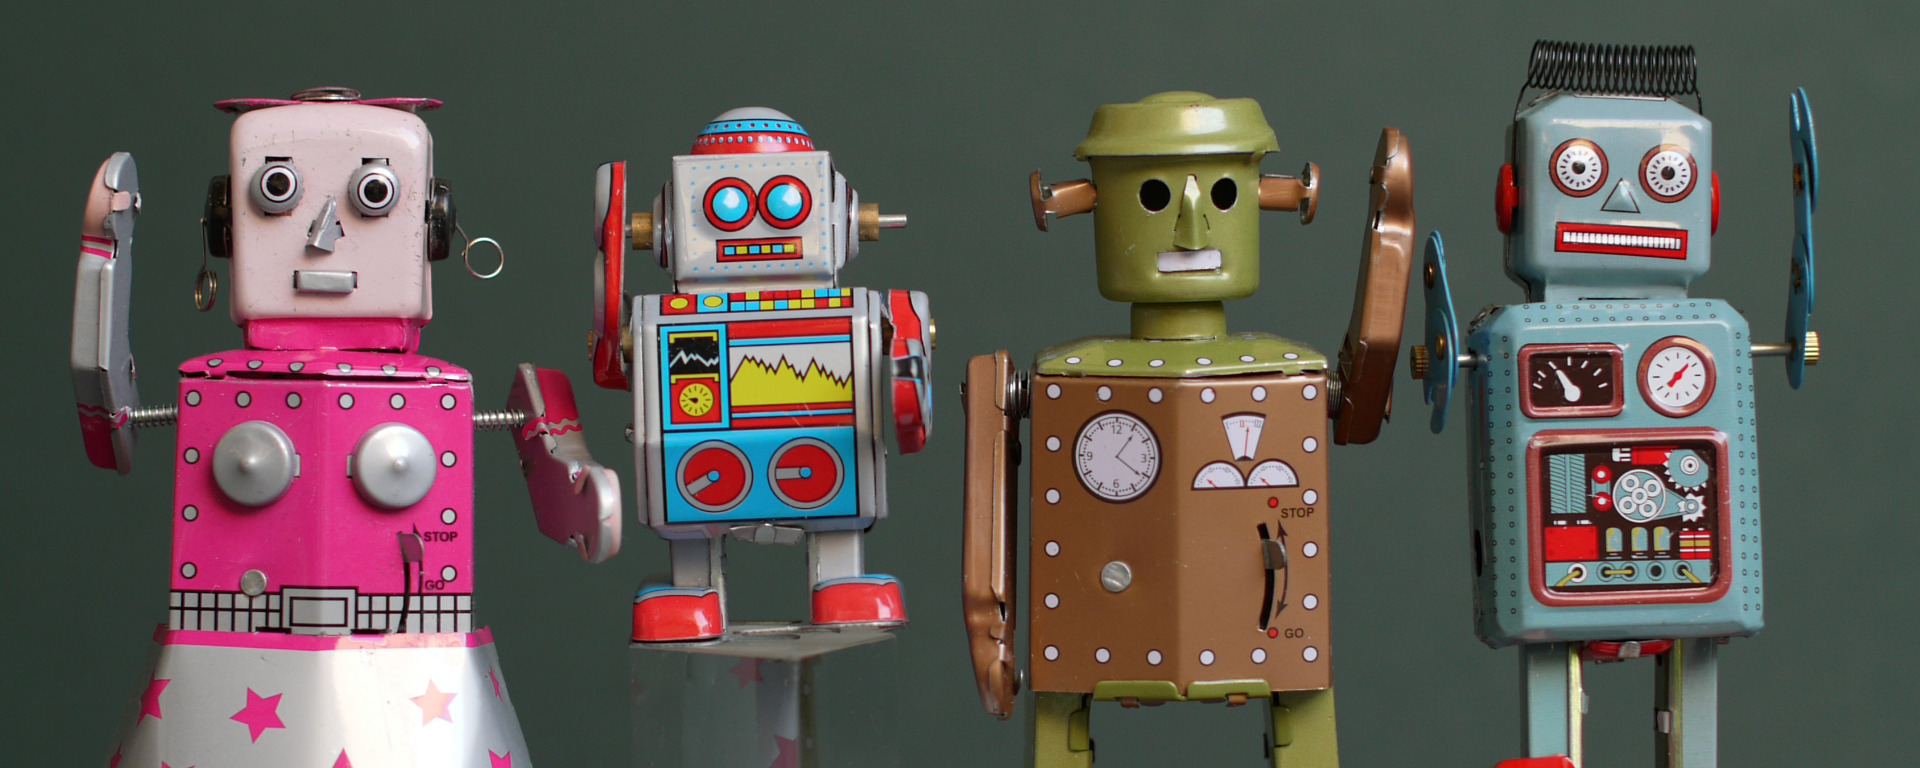 Which is the real robot?